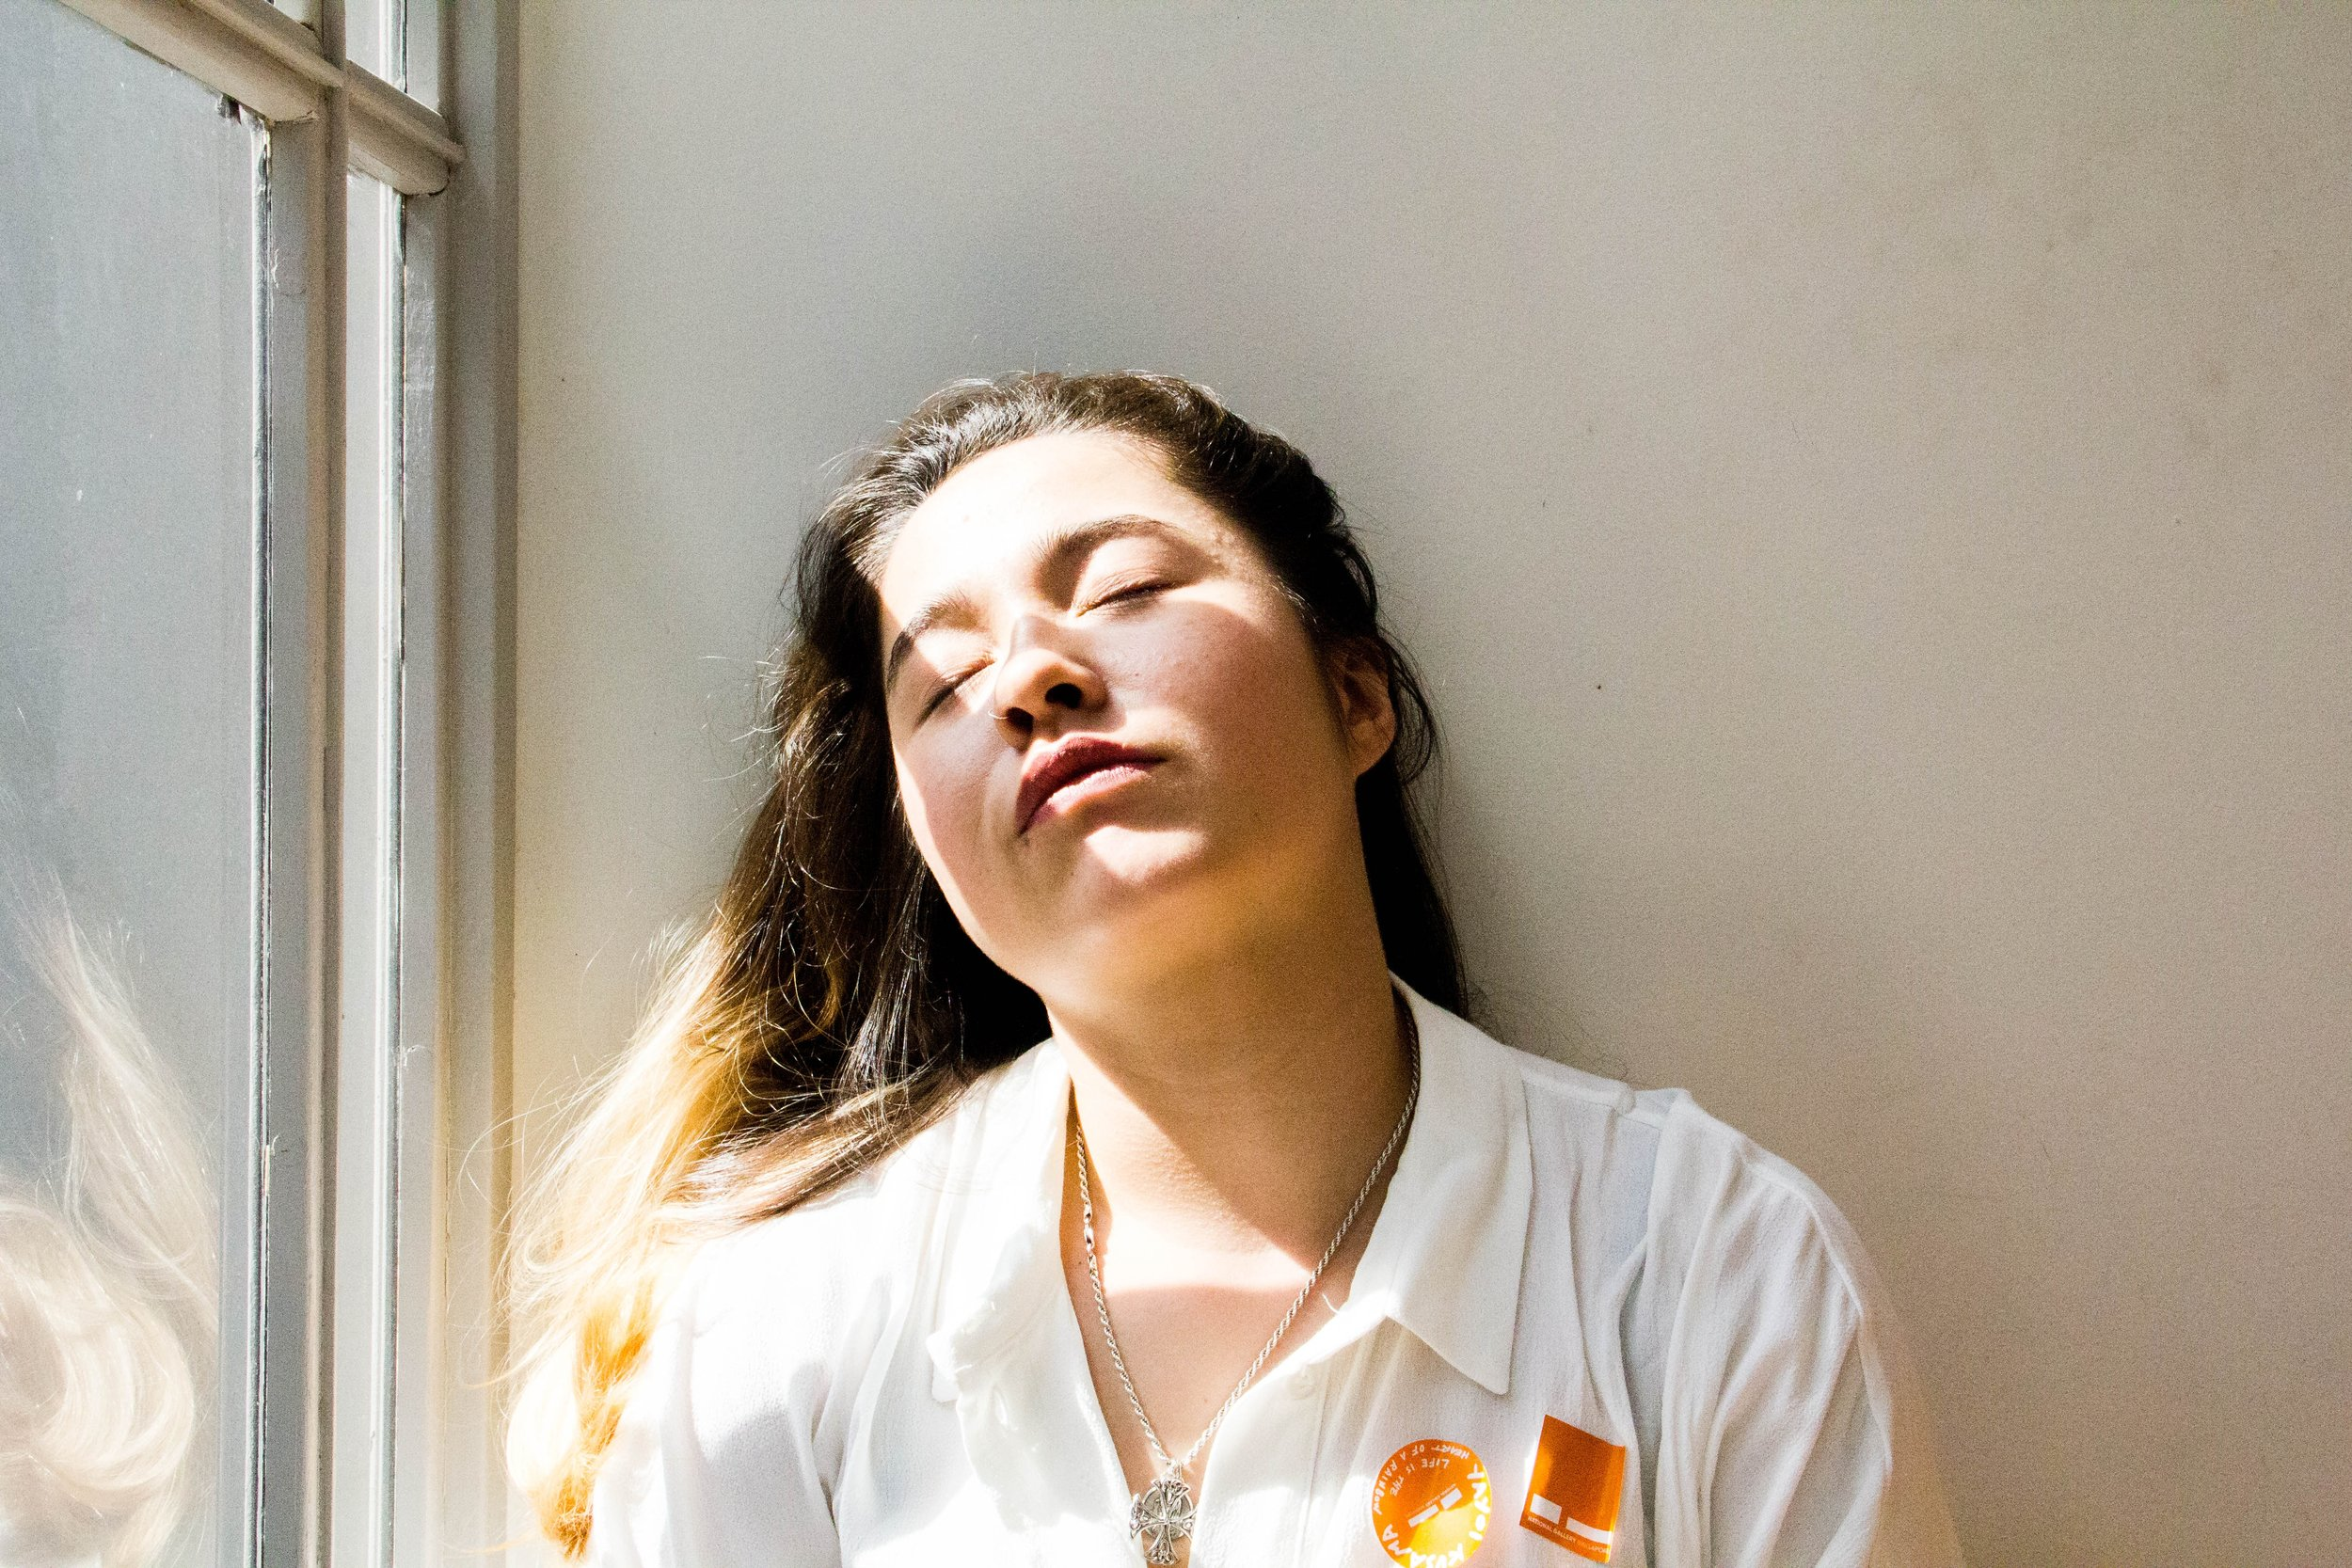 woman tired at work who has daytime sleepiness